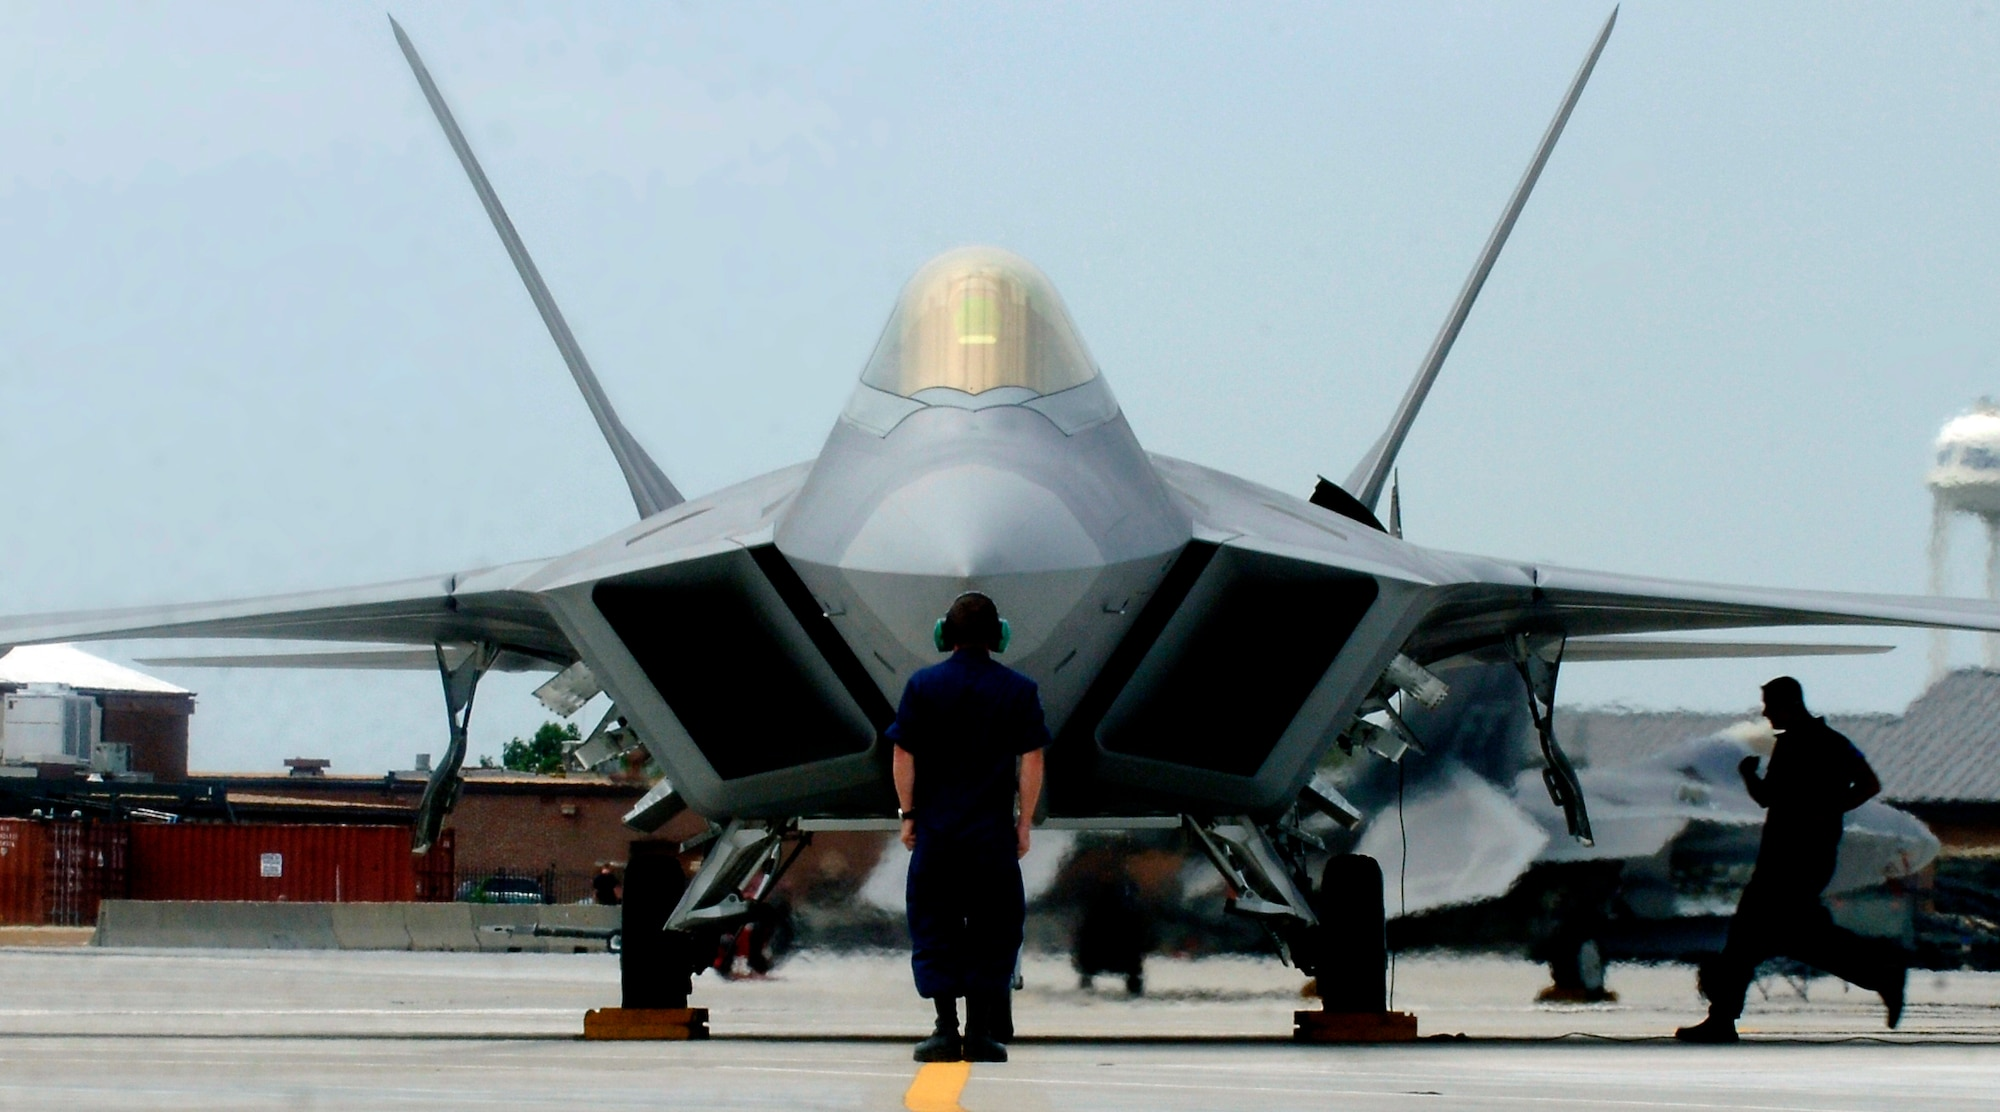 The F-22 Raptors at Langley Air Force Base, Va., have reached Full Operational Capability as of Dec. 12.  The announcement officially makes Langley's F-22 squadrons combat ready.  (U.S. Air Force photo/Senior Airman Christopher L. Ingersoll)